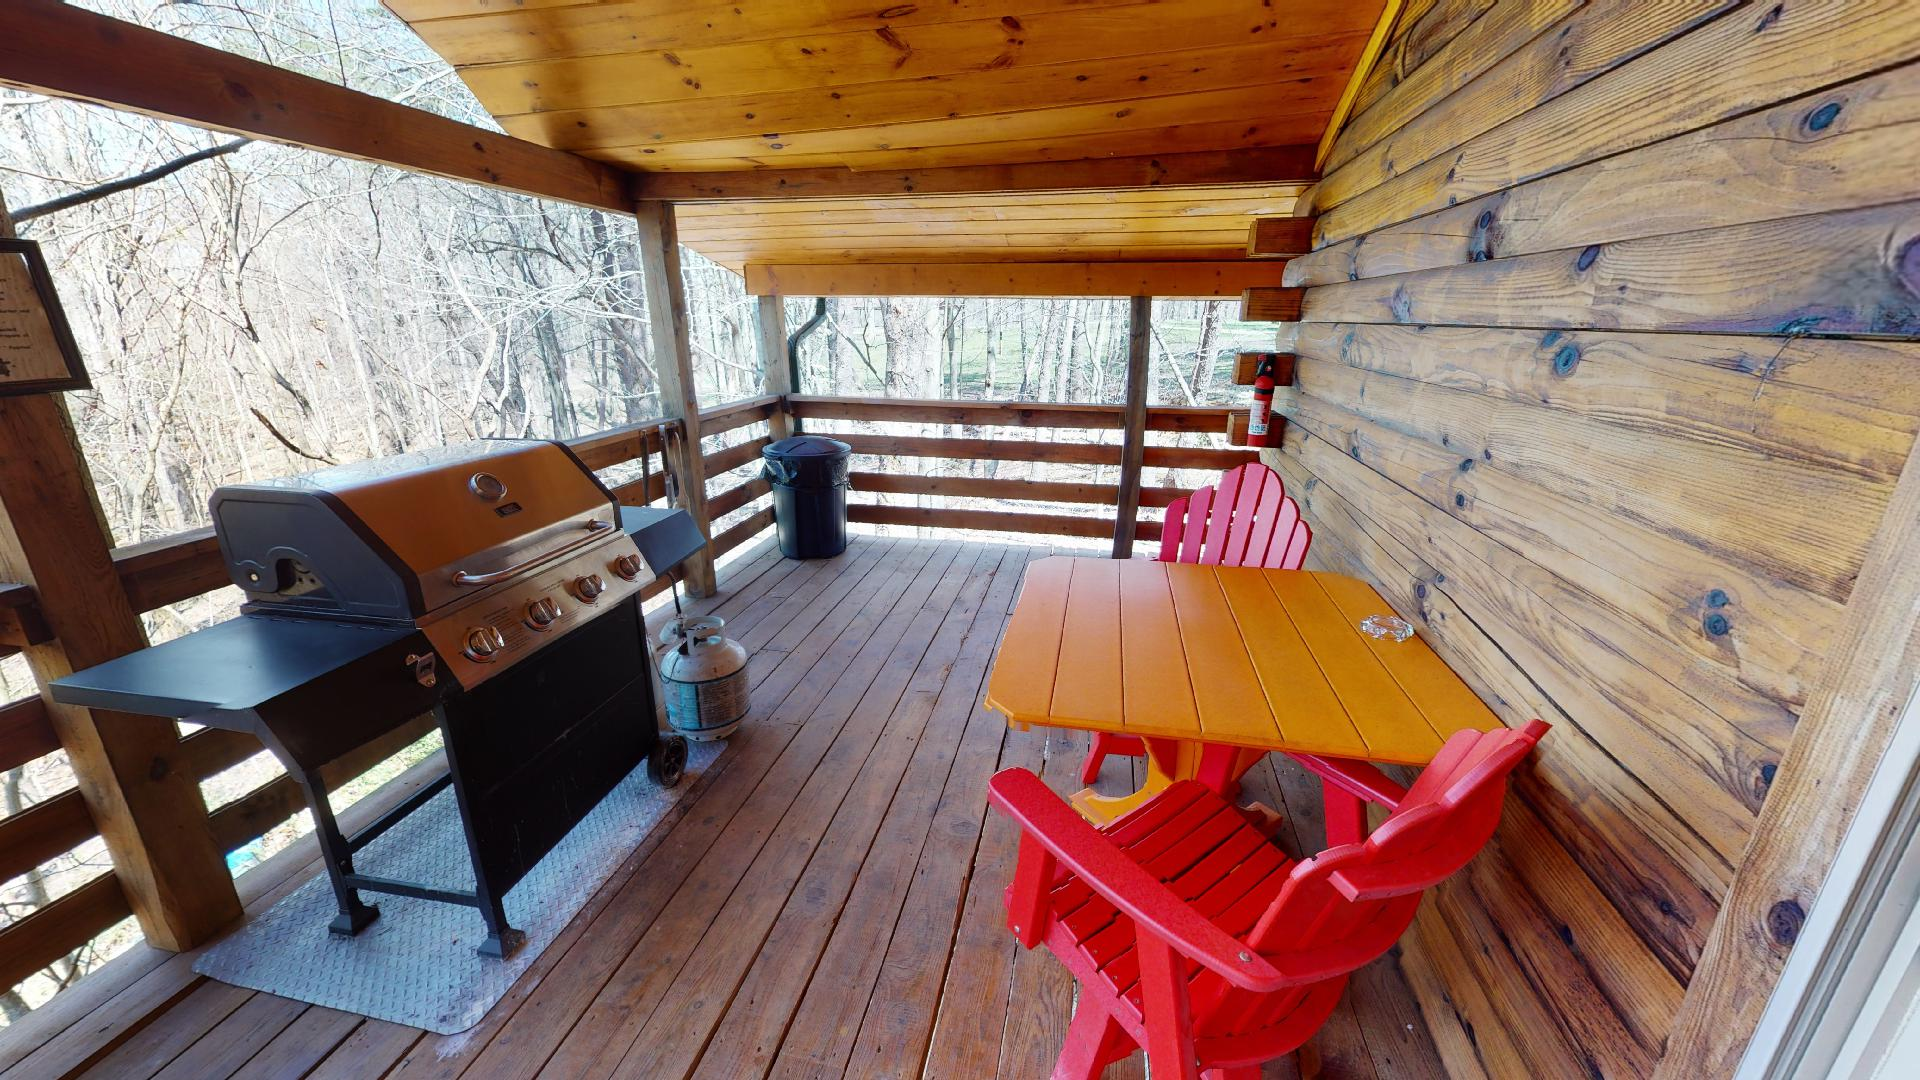 The Overlook - Seating area and propane grill.